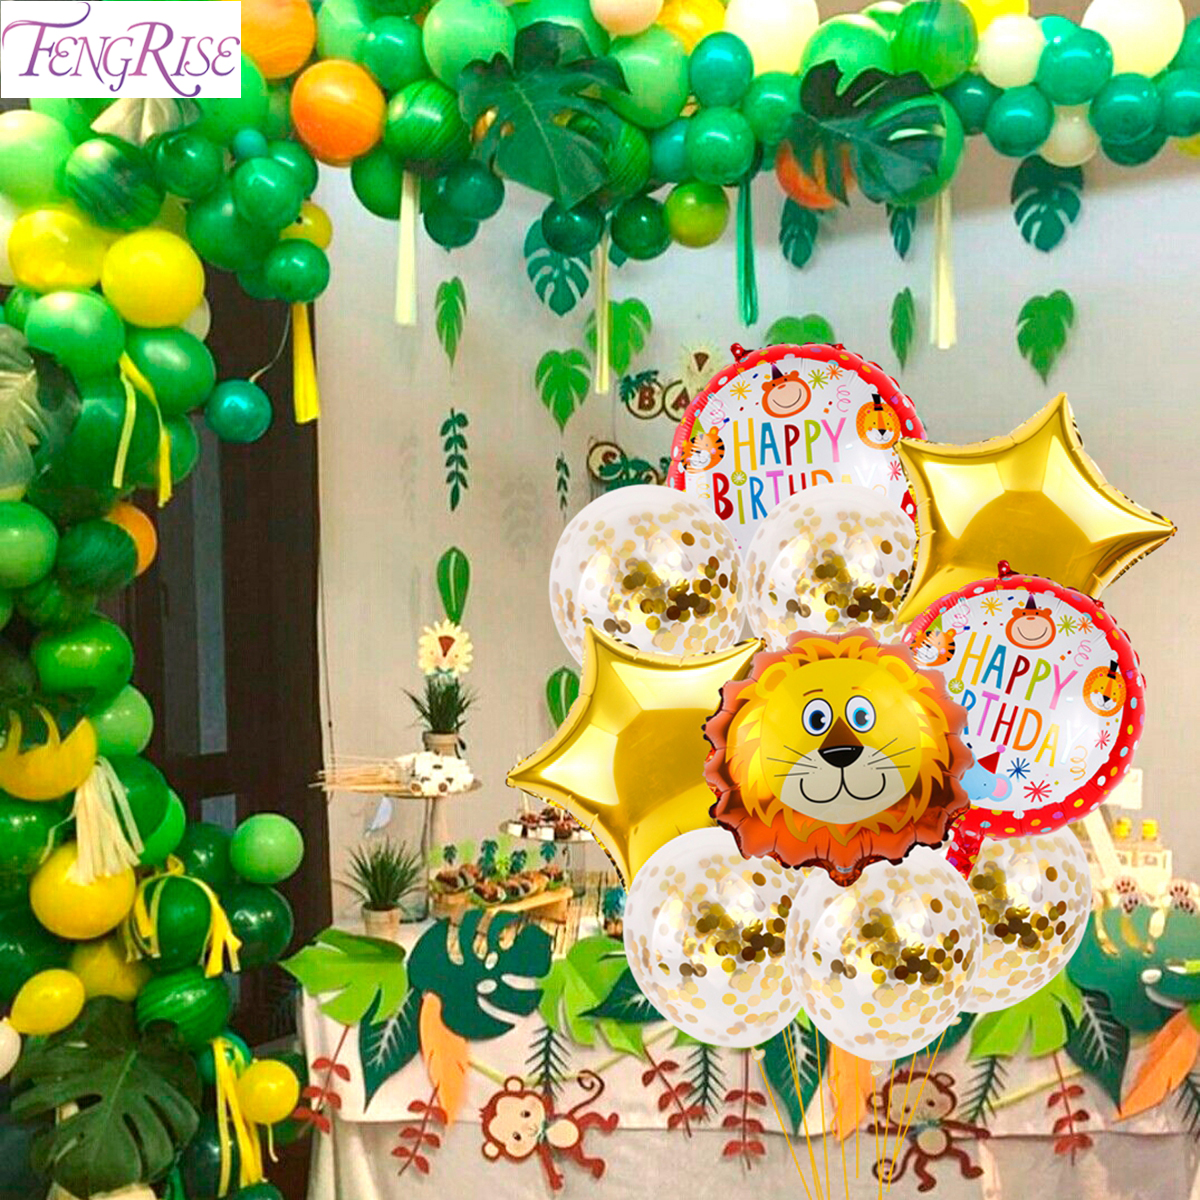 Us 0 41 14 Off Fengrise Disposable Tableware Jungle Party Birthday Party Decor Kids Jungle Safari Party Animals Theme Baby Shower Supplies In Party